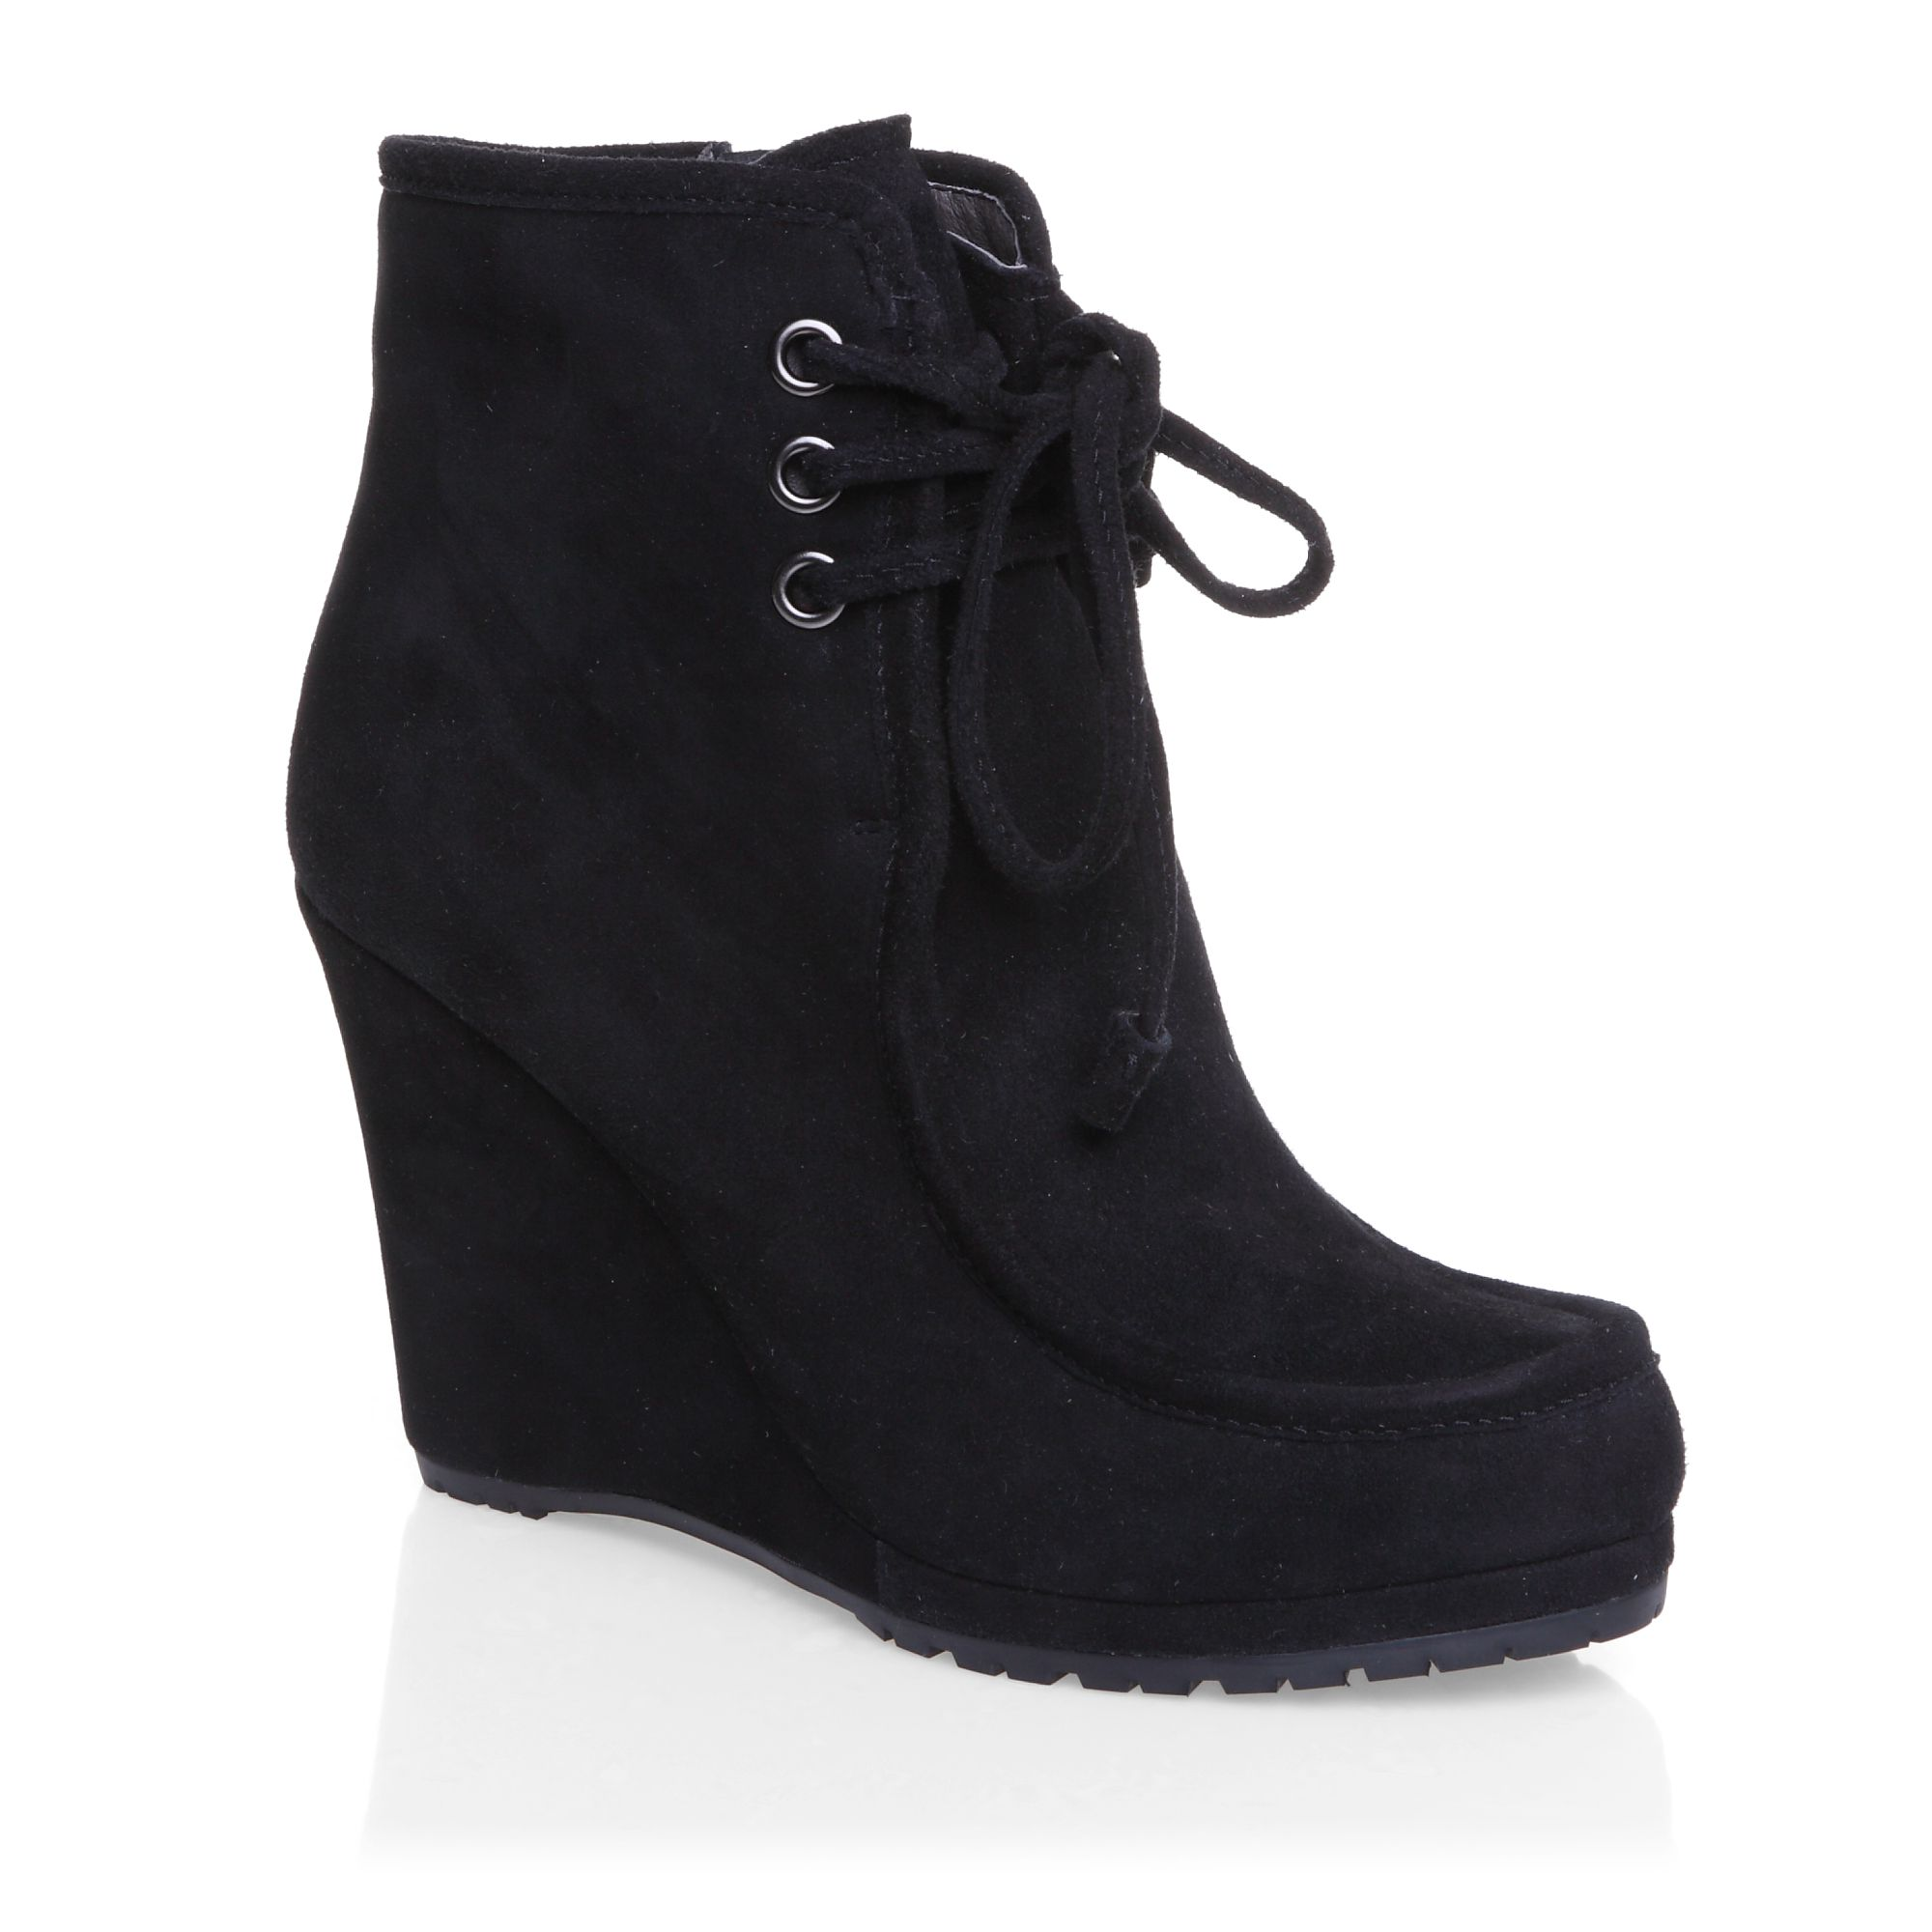 Laceup wedge boots